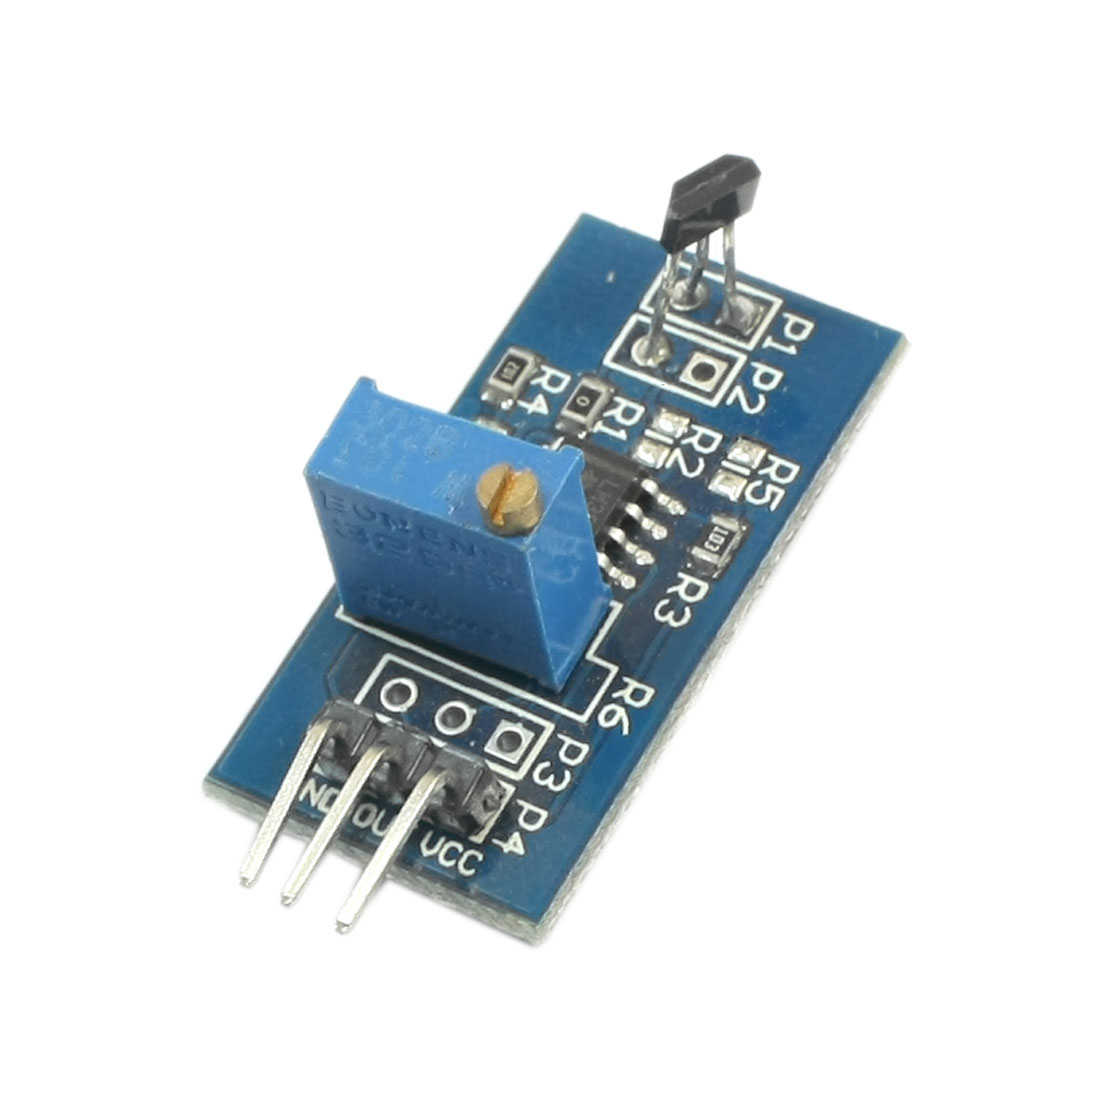 Speed Detect LM393 Chip 3144 Hall Sensor Module DC 5V for Smart Car